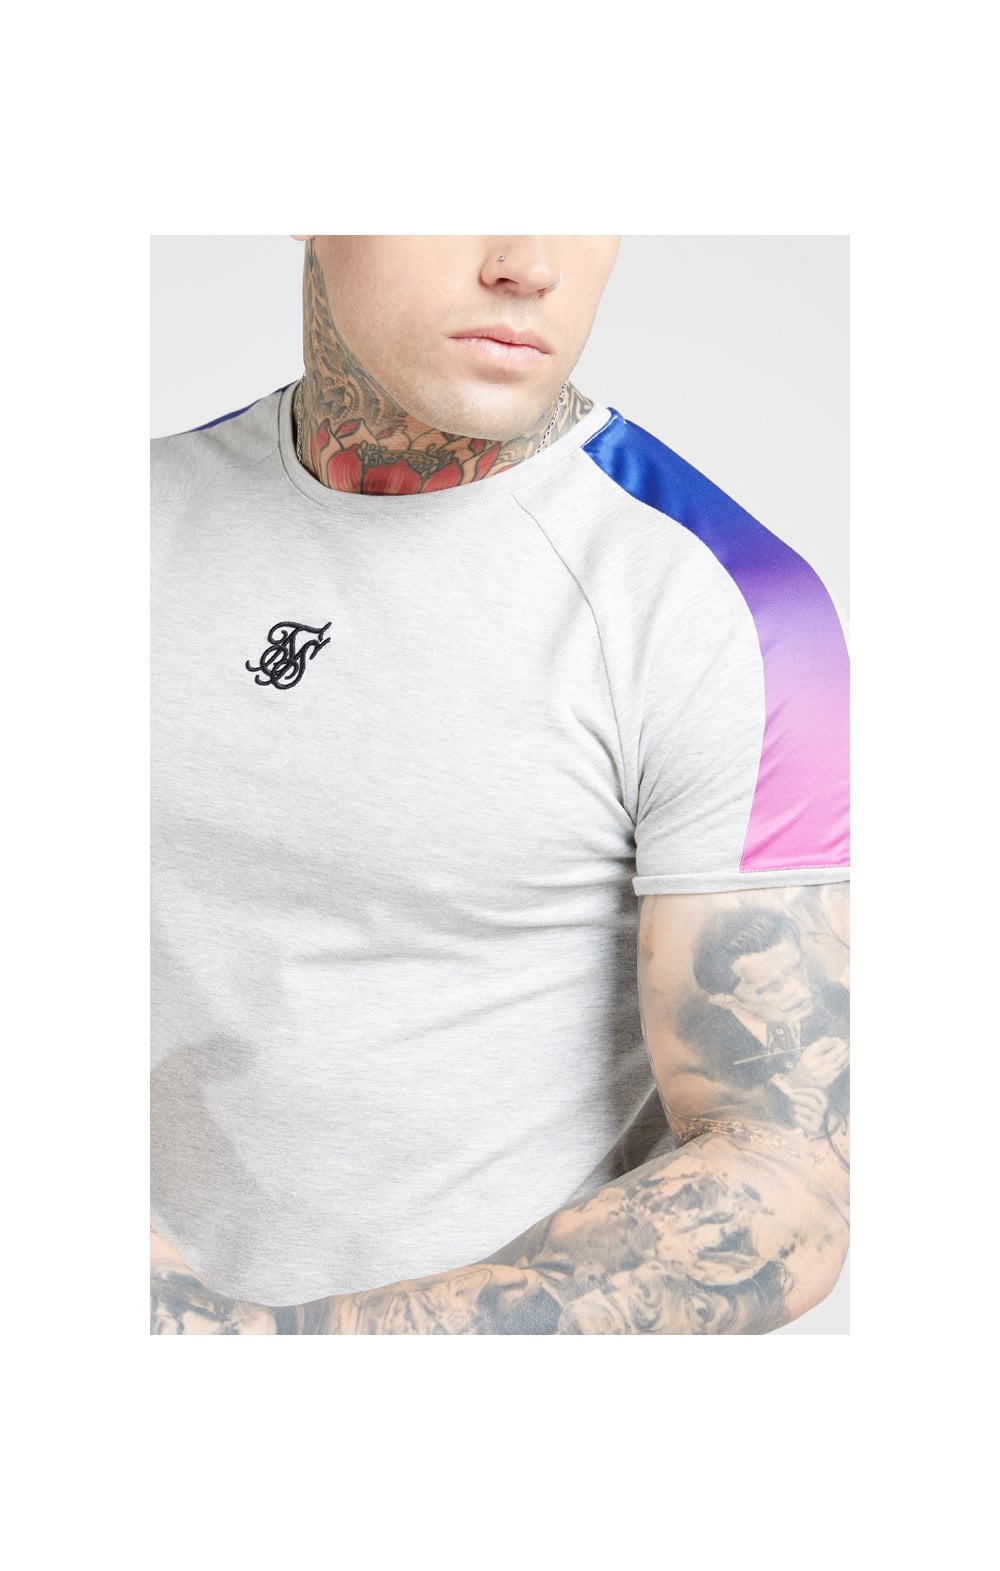 SikSilk S/S Marl Fade Panel Tech Tee – Grey Marl & Neon